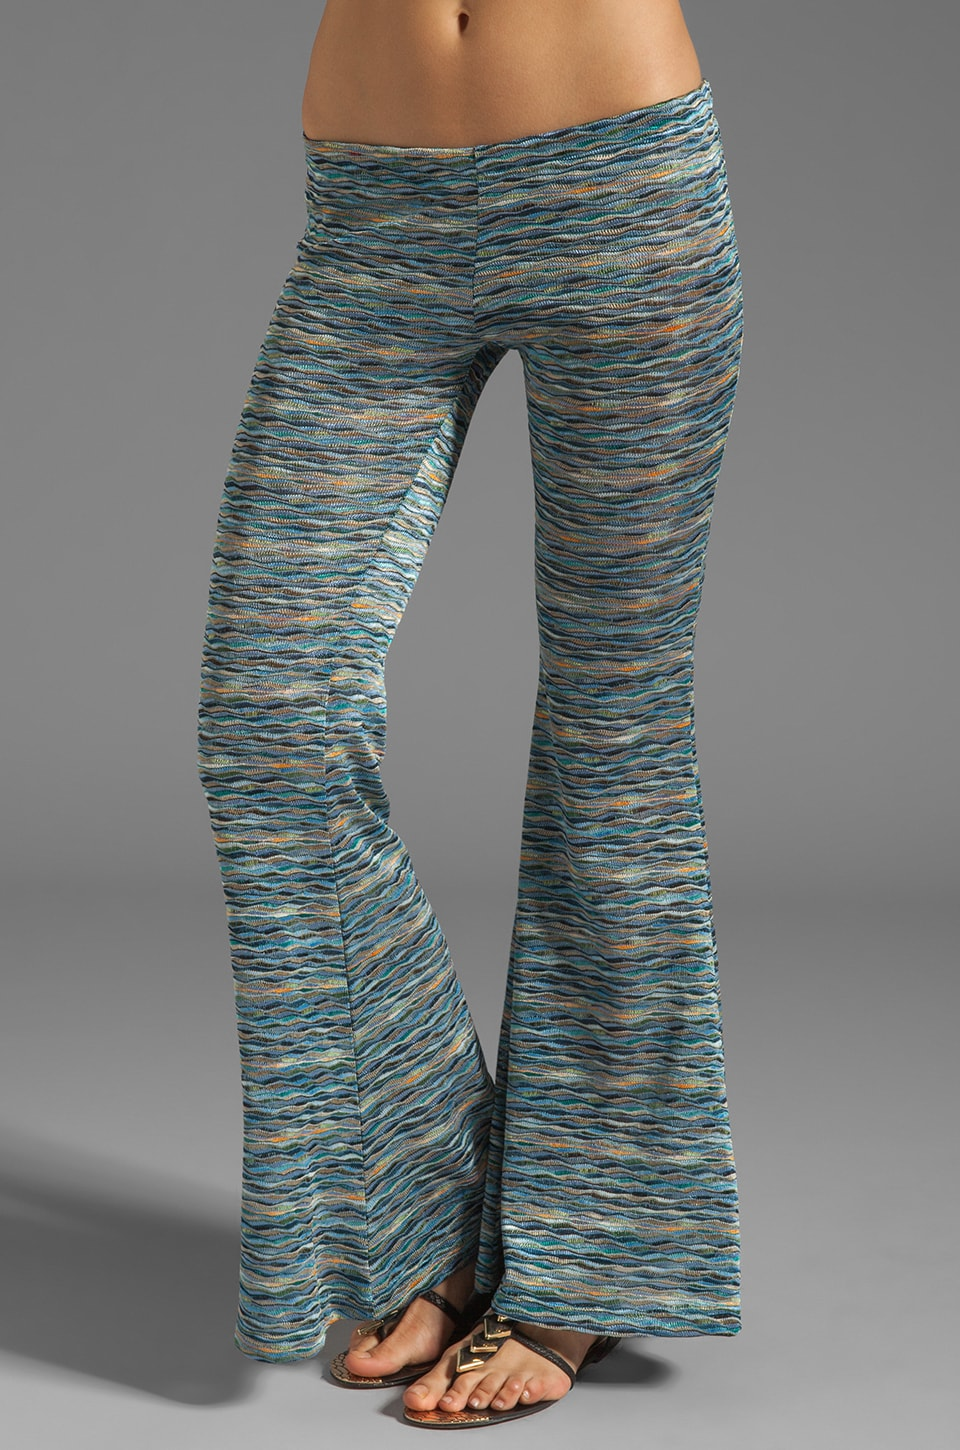 Eight Sixty Pants in Blue/Green